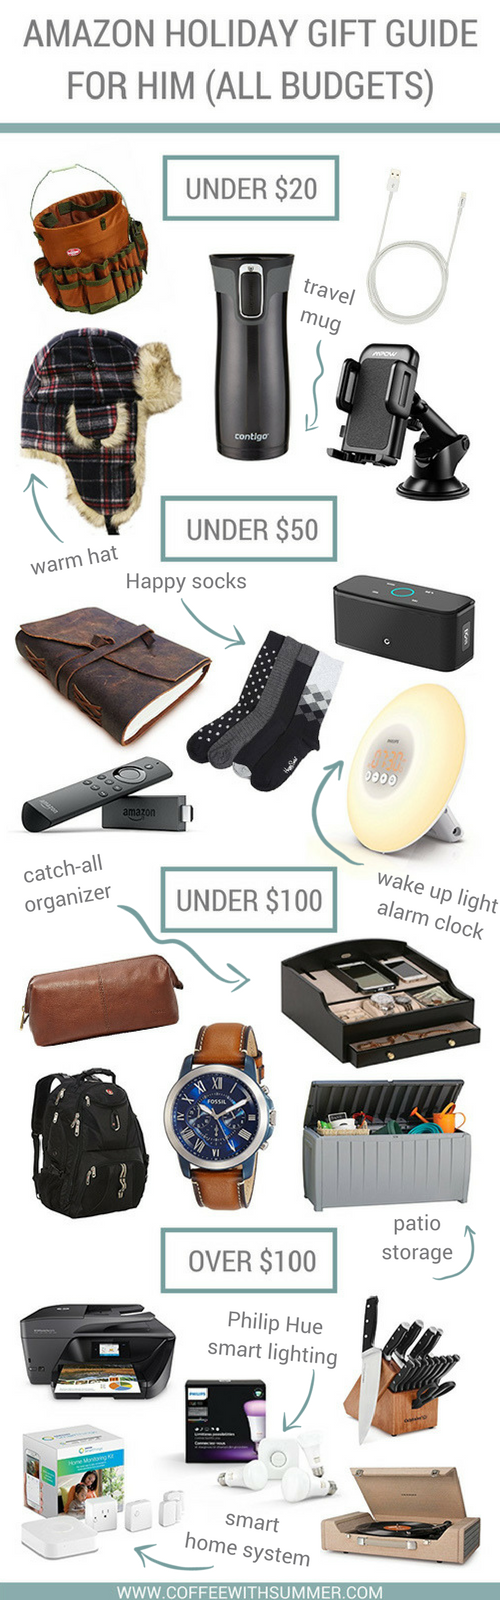 Best Christmas Gifts 2020 For Him Amazon